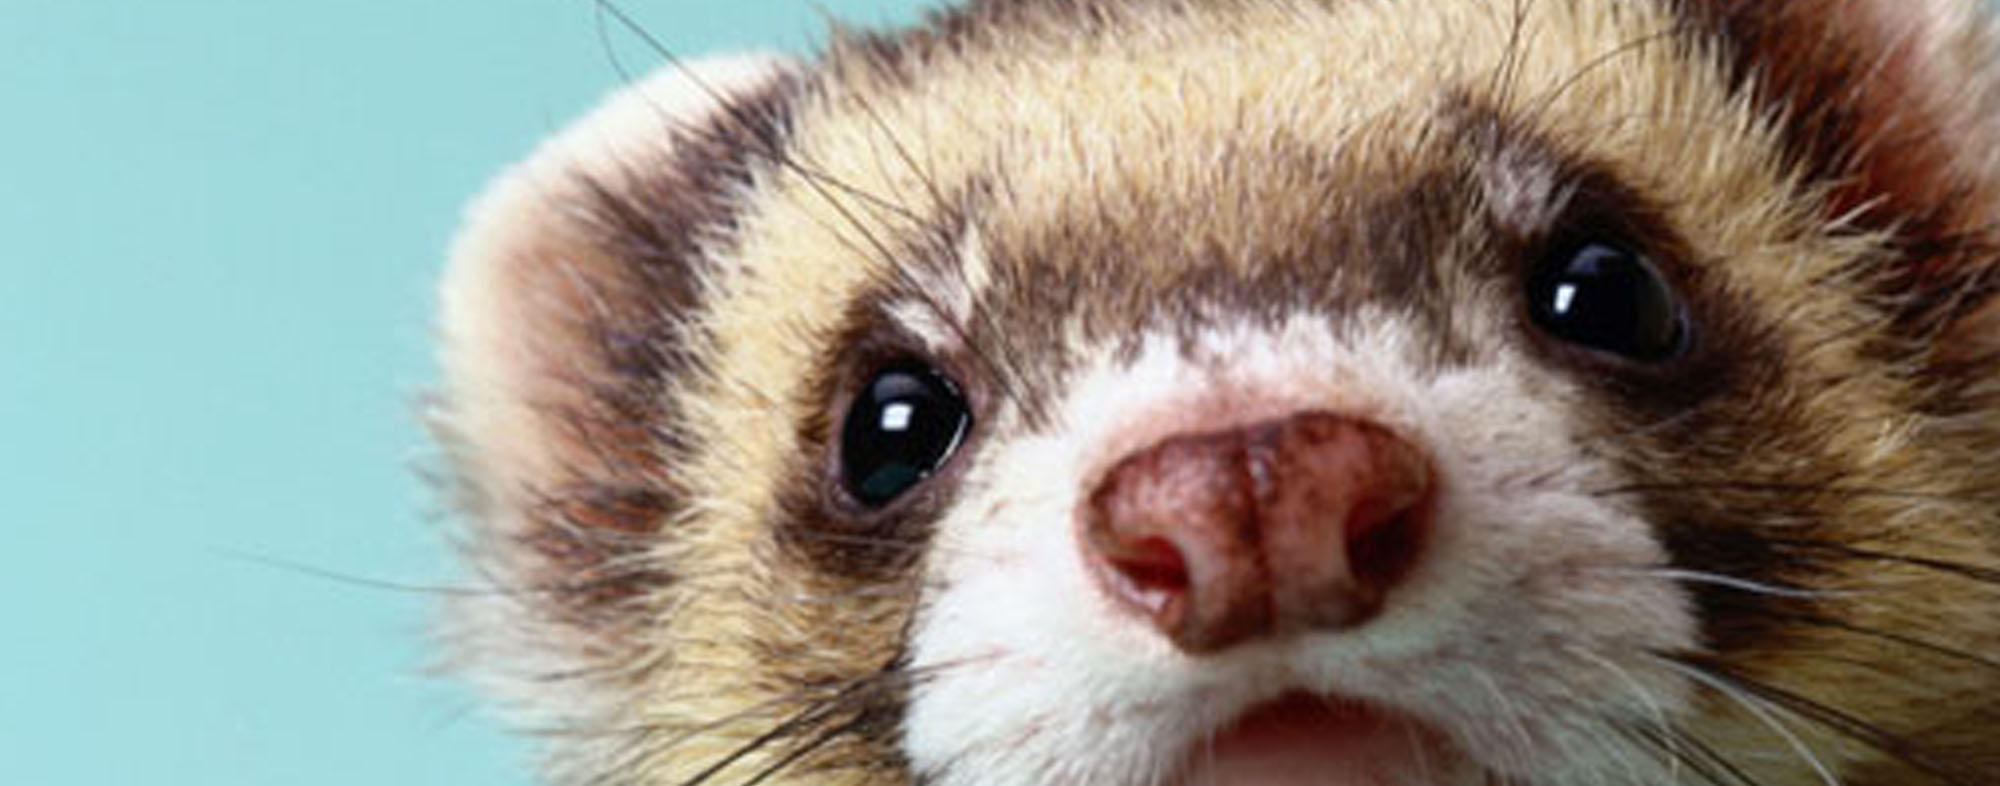 A pet ferret who knows that his owner is readying to groom him